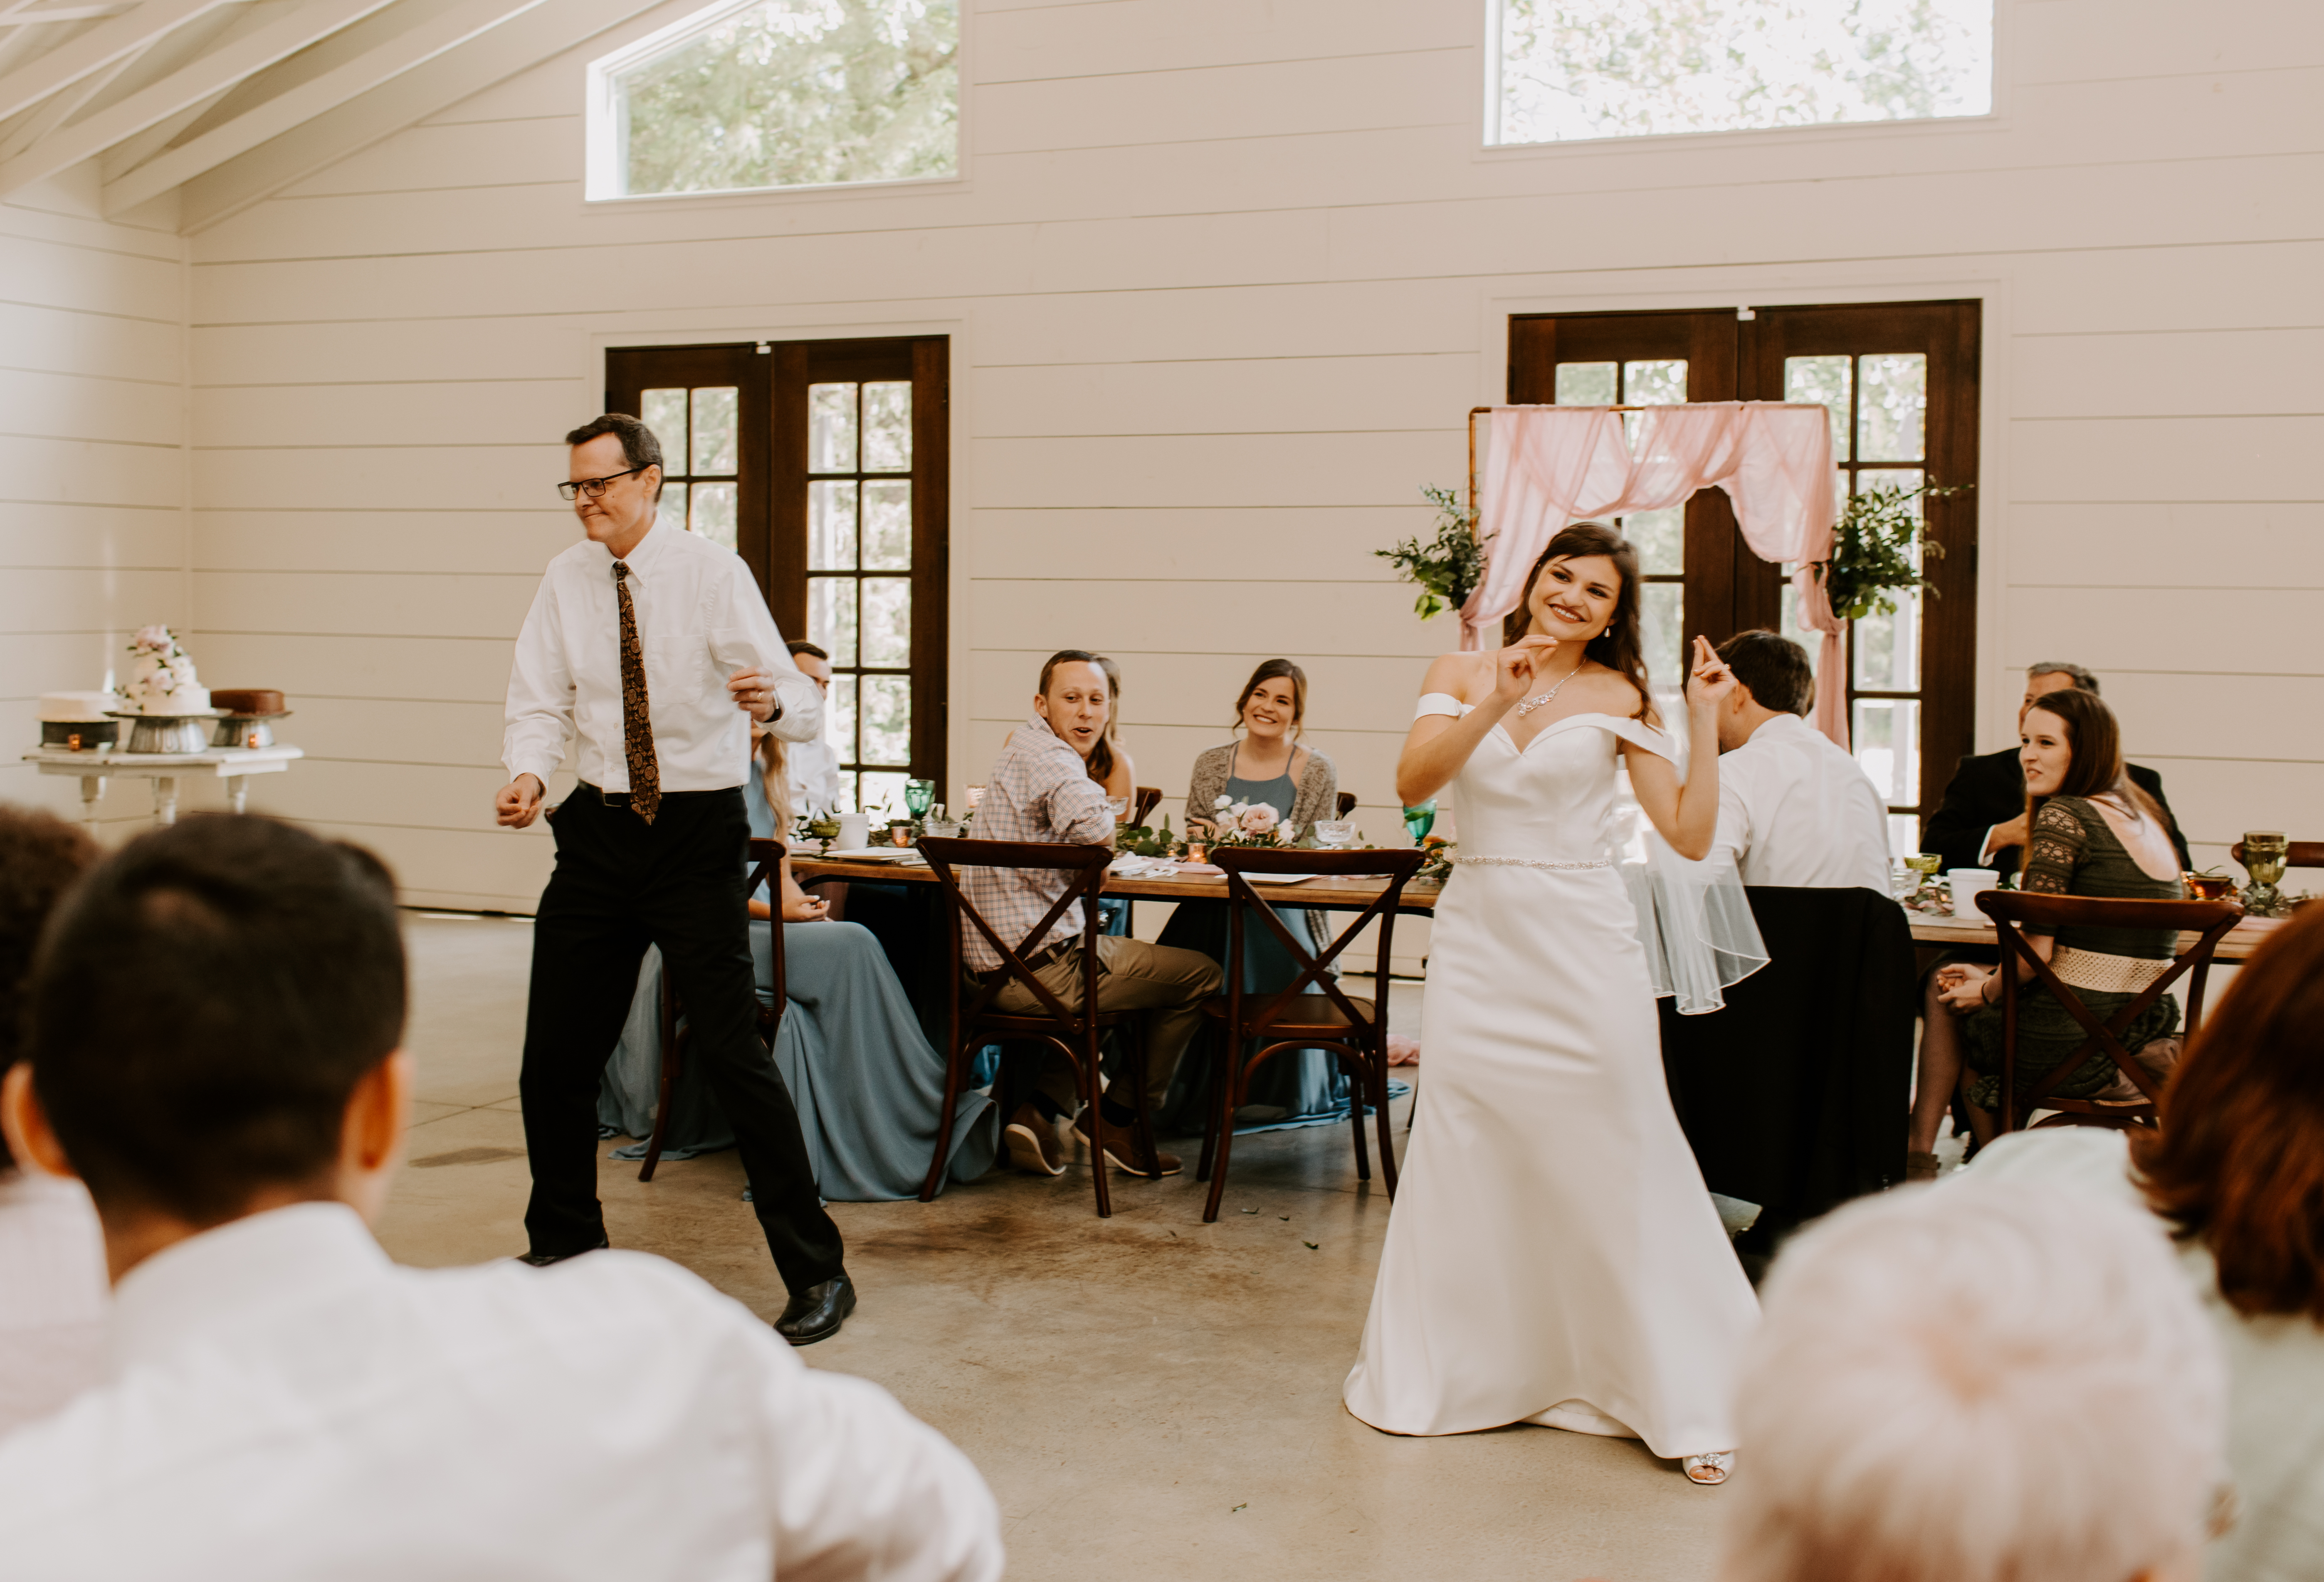 Coordinated father/daughter dance